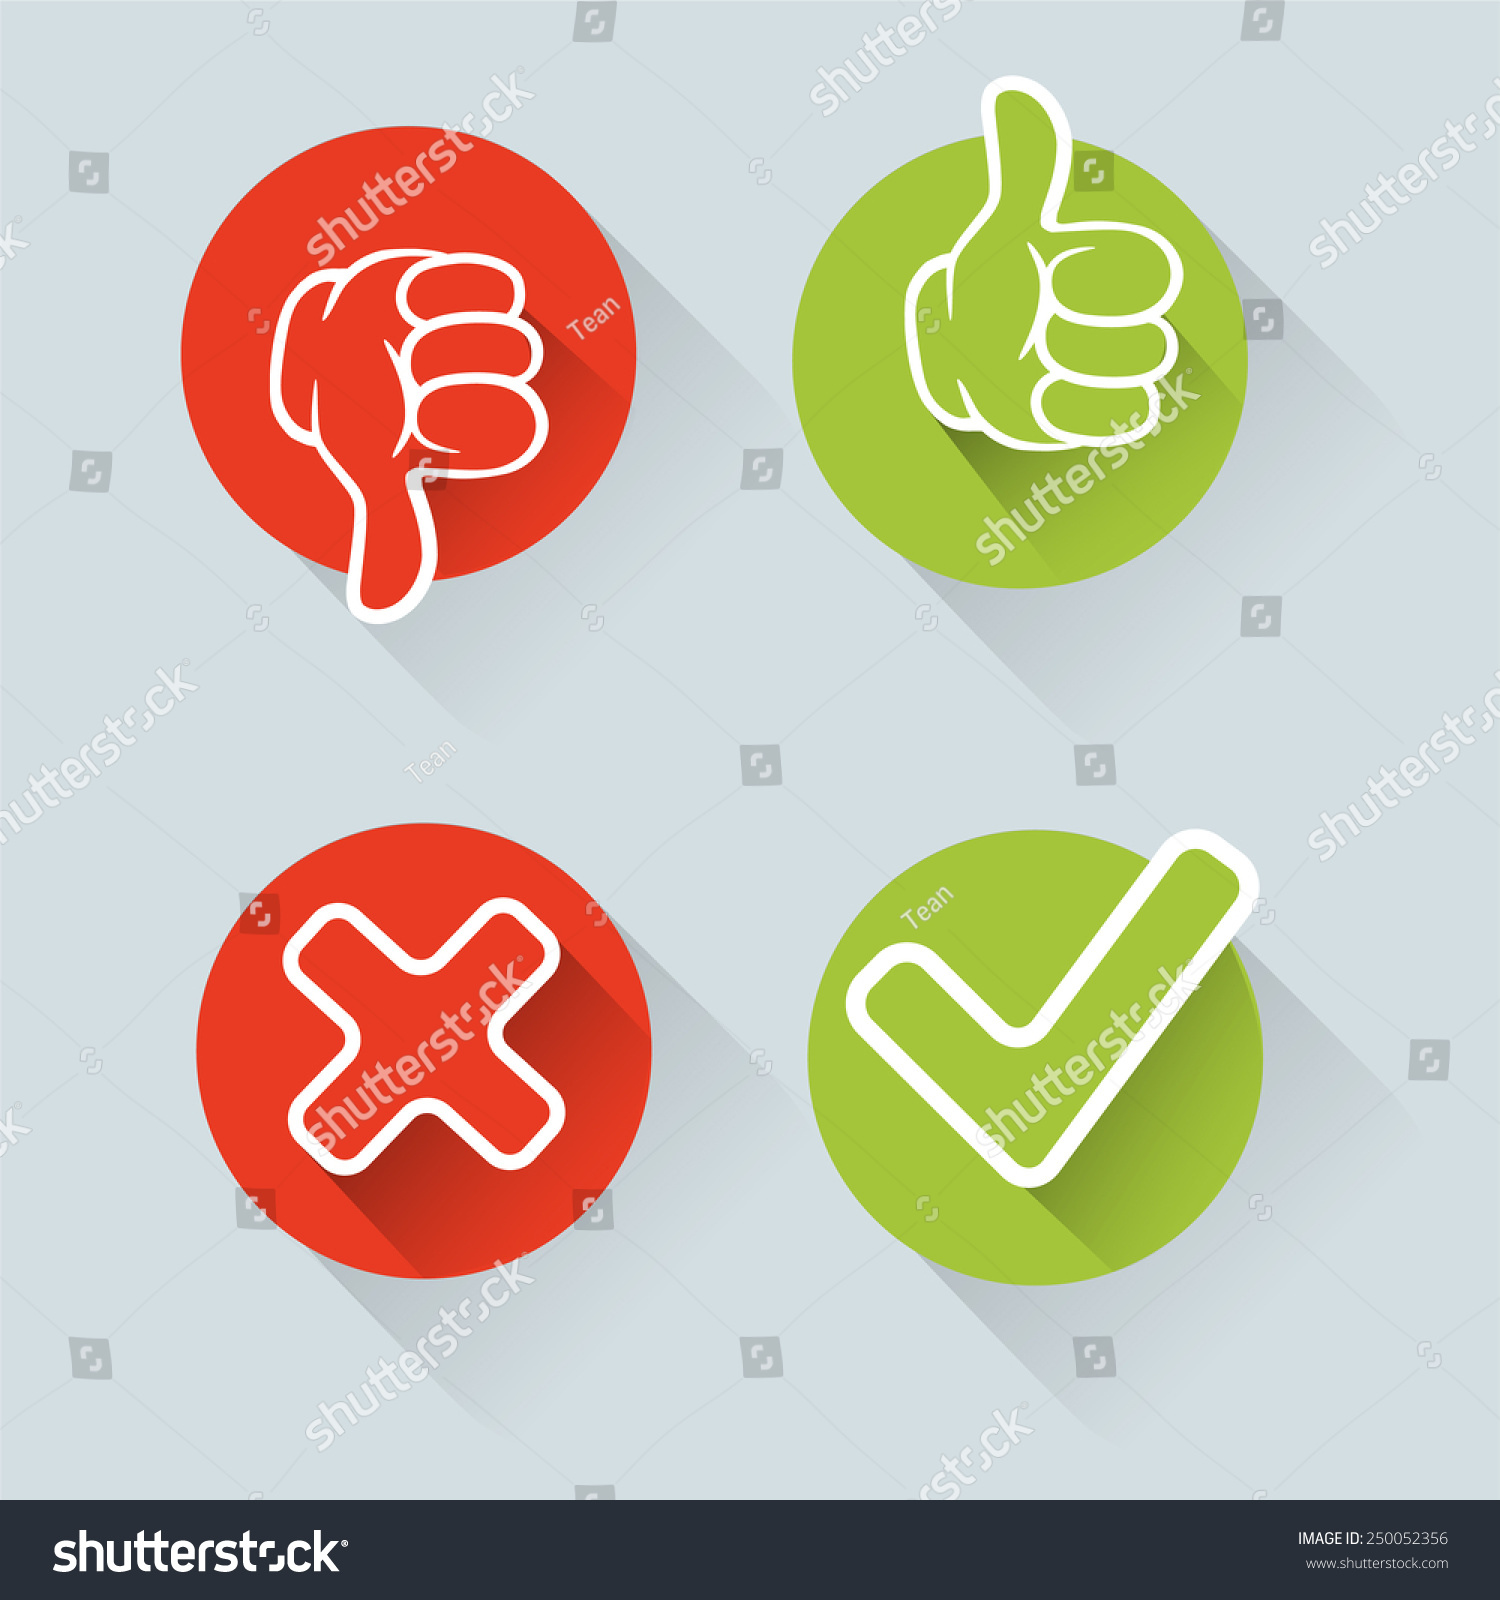 thumbs up or down on shakespeare essay Our services are 100% private and confidential we can handle your term papers, discussions, thesis, admission essay, research papers, coursework, lab reports, annotated bibliography, case studies, powerpoint presentation, thesis proposal, dissertation and all other related essay writing related works.